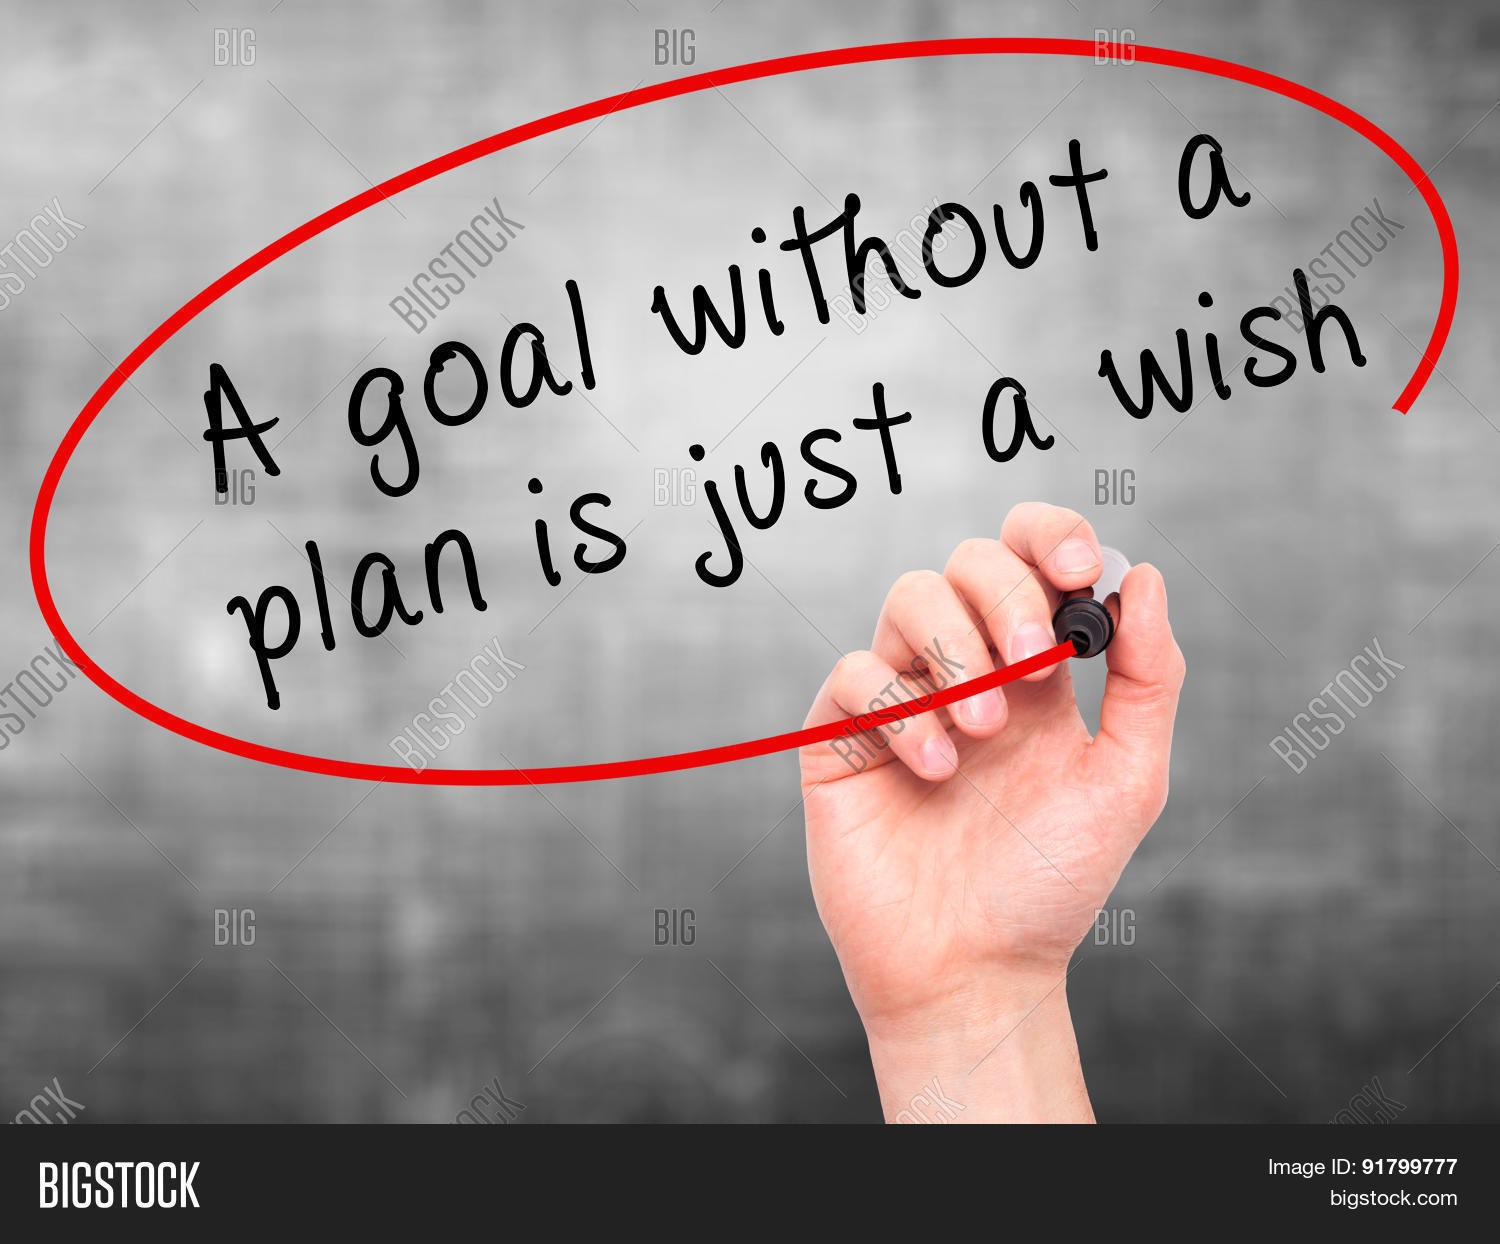 a goal without a plan is just a wish essay